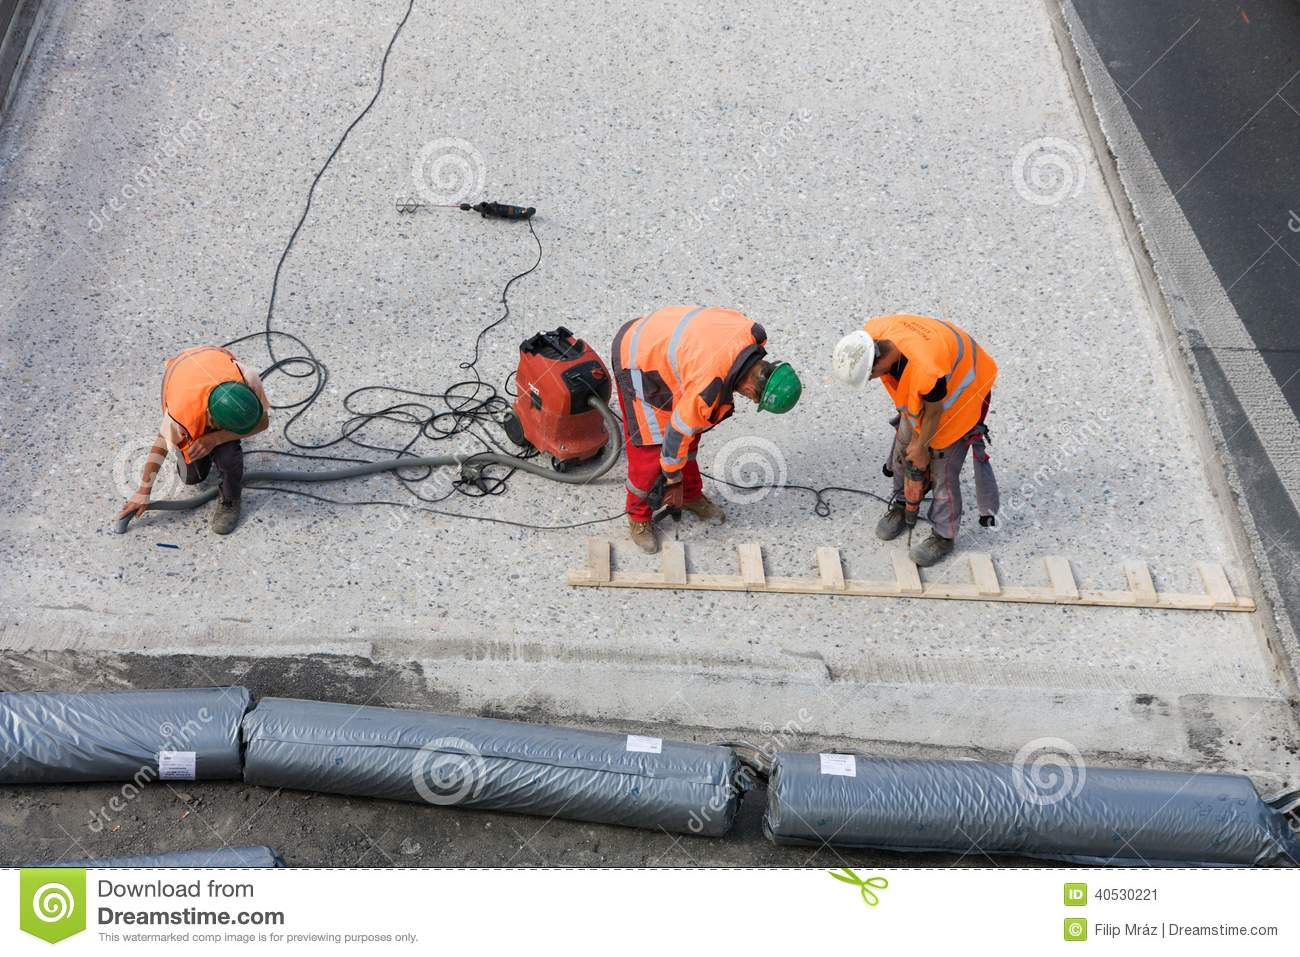 Three road workers